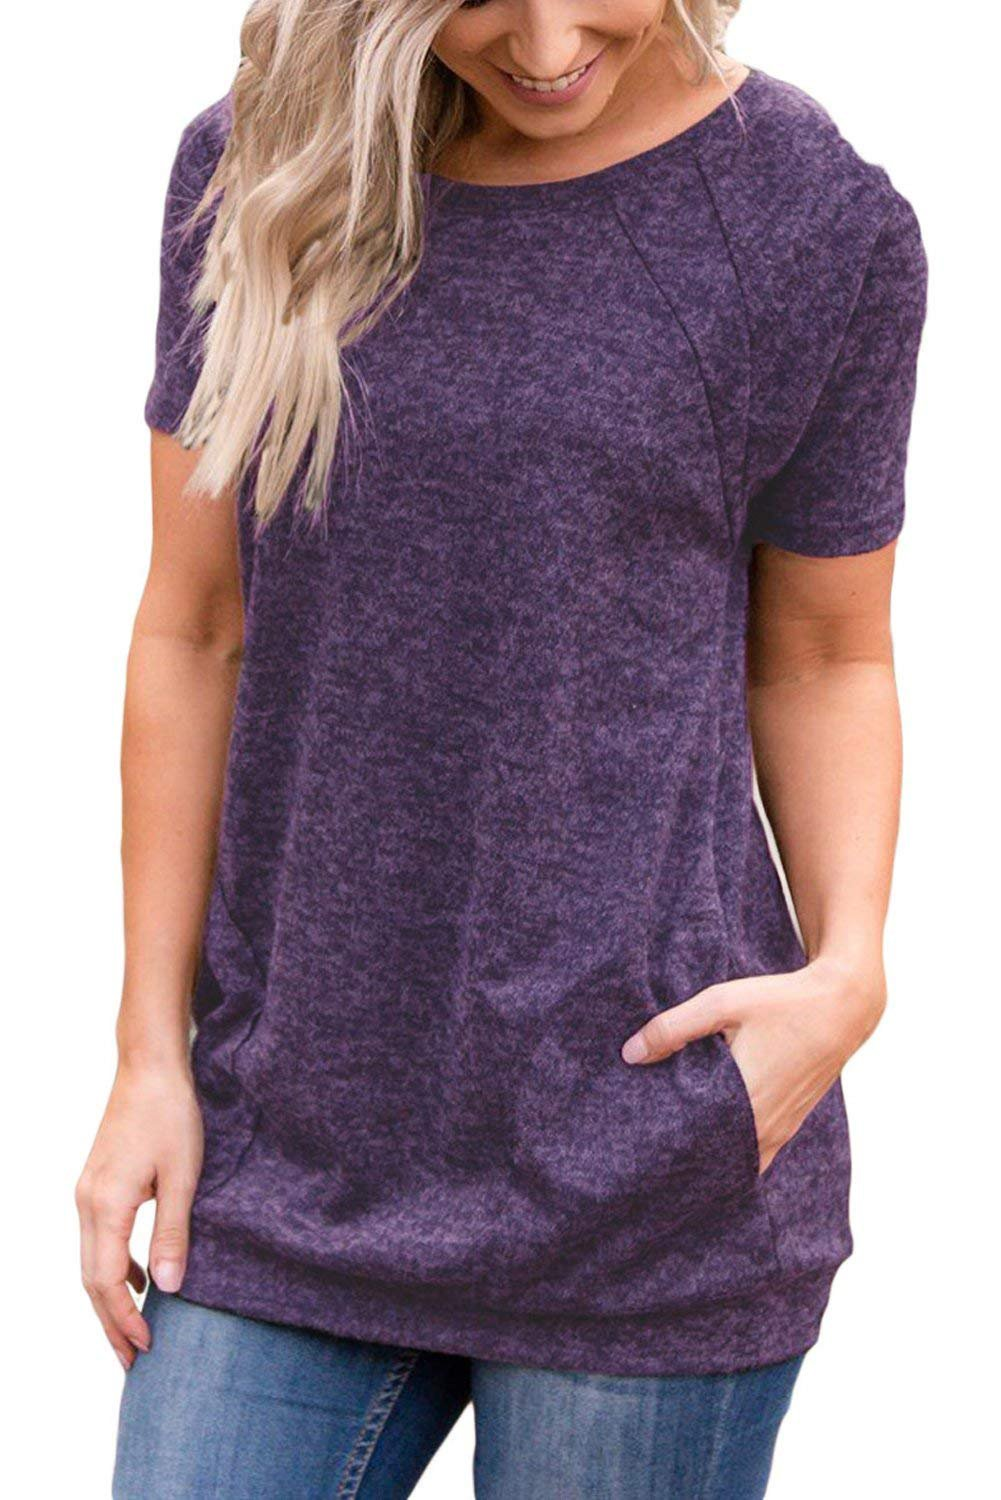 Uniboutique Womens Short Sleeve Round Neck Tunic T Shirts Tops with Pockets Purple